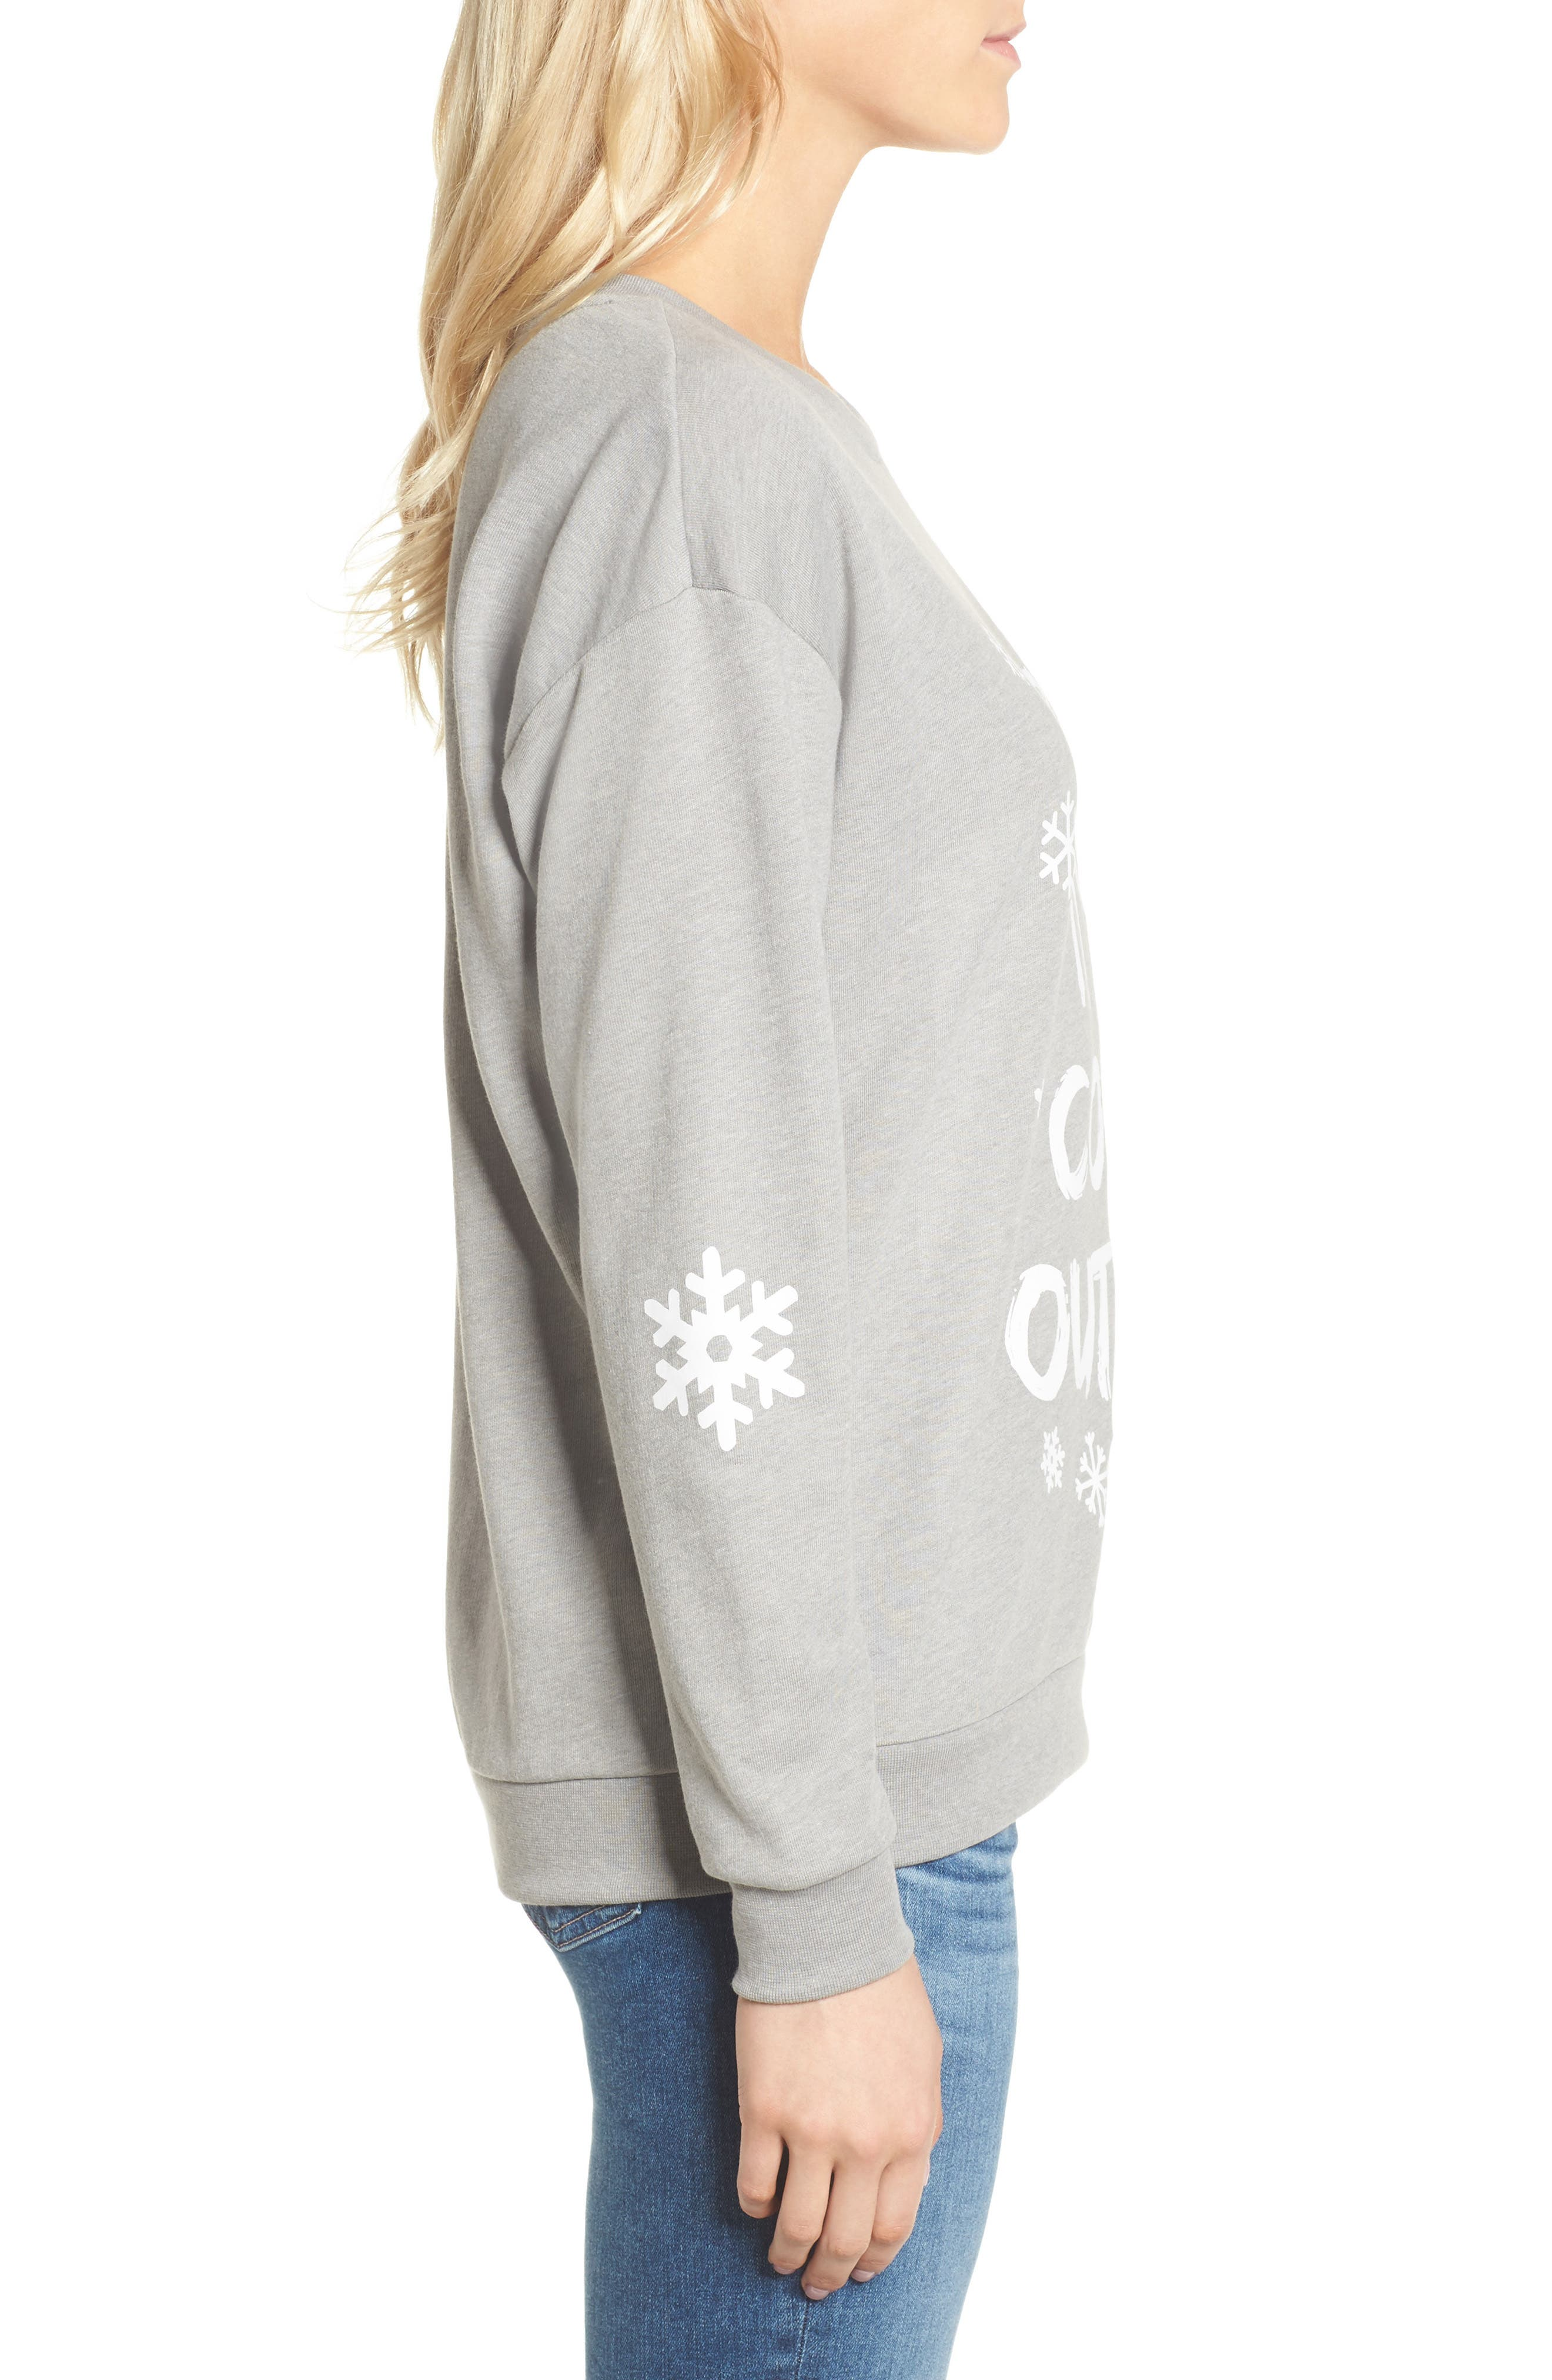 Baby It's Cold Outside Sweatshirt,                             Alternate thumbnail 3, color,                             020